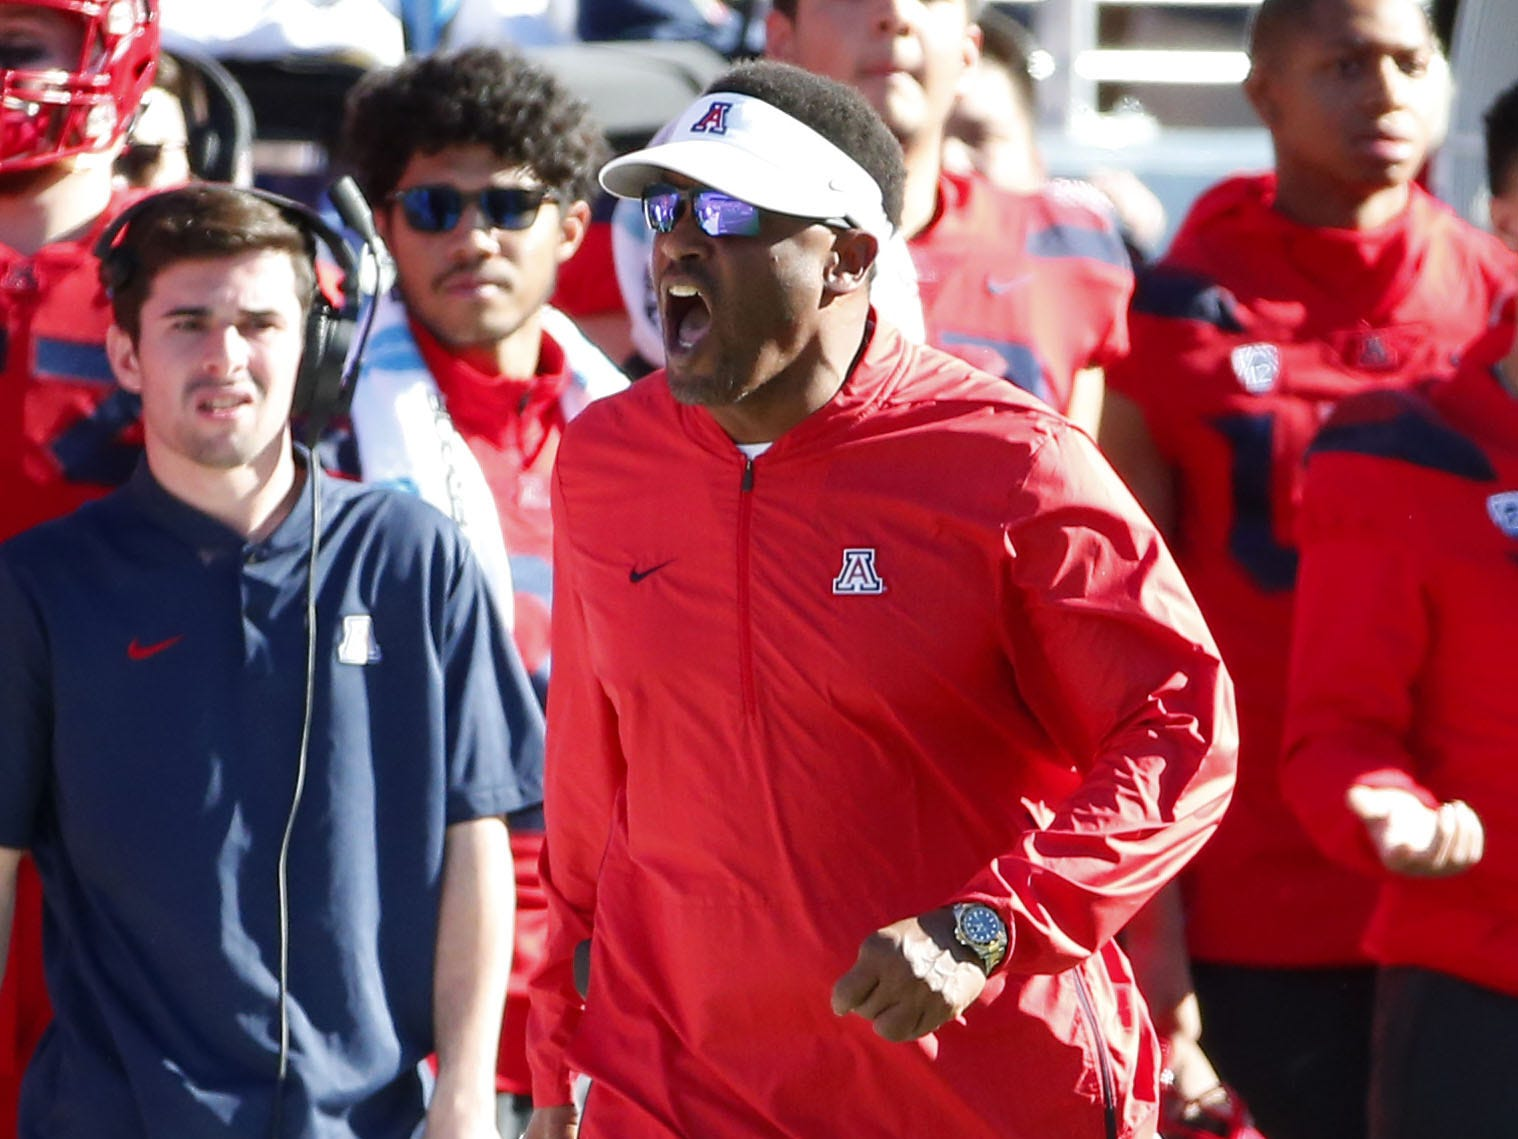 Arizona Wildcats head coach Kevin Sumlin is upset about a call during the Territorial Cup football game against the Arizona State Sun Devils at Arizona Stadium in Tucson on November 24.